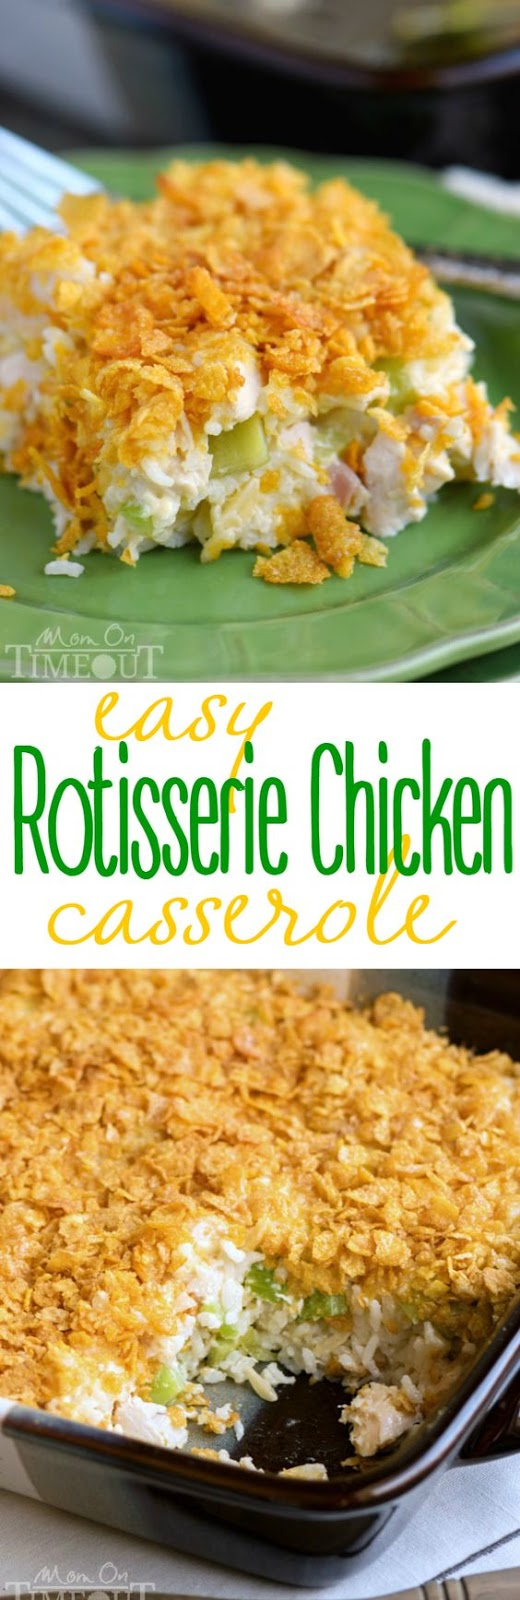 Rotisserie Chicken Casserole Recipe Zero